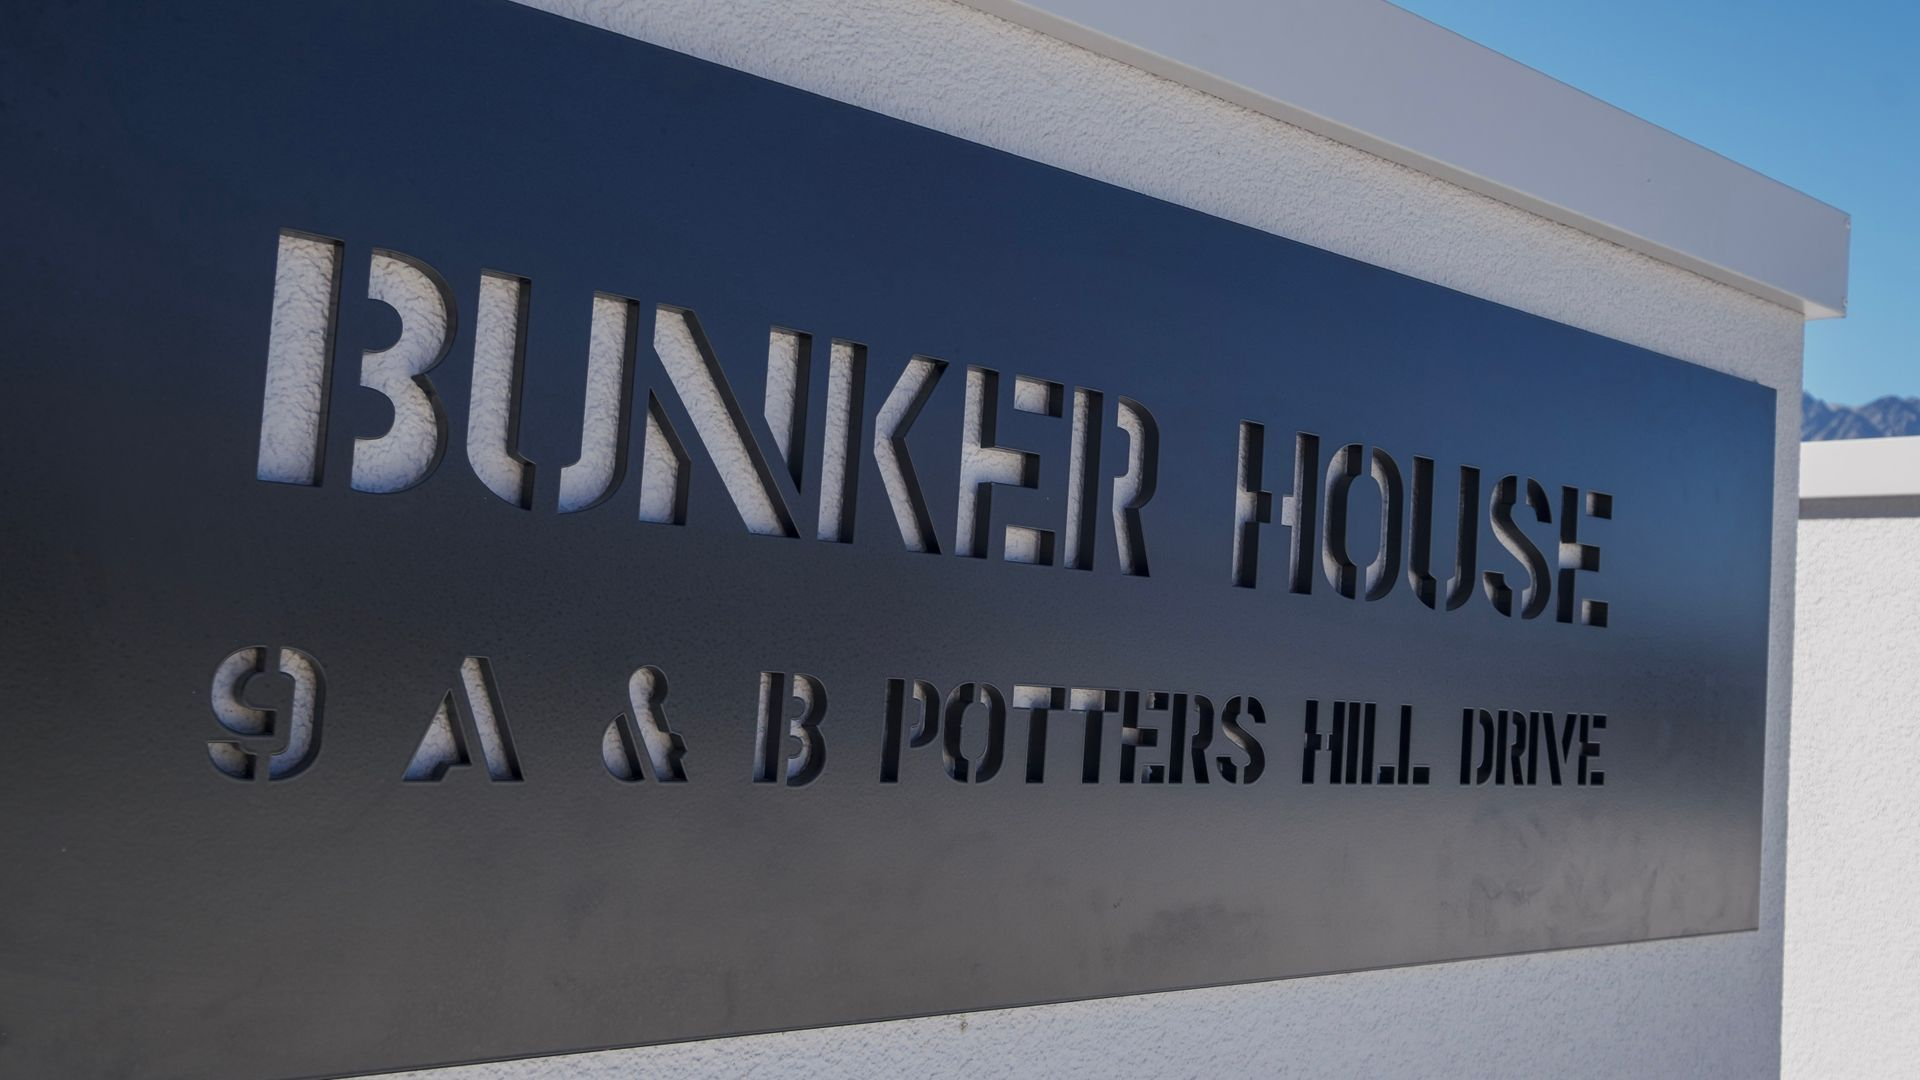 The Bunker House B